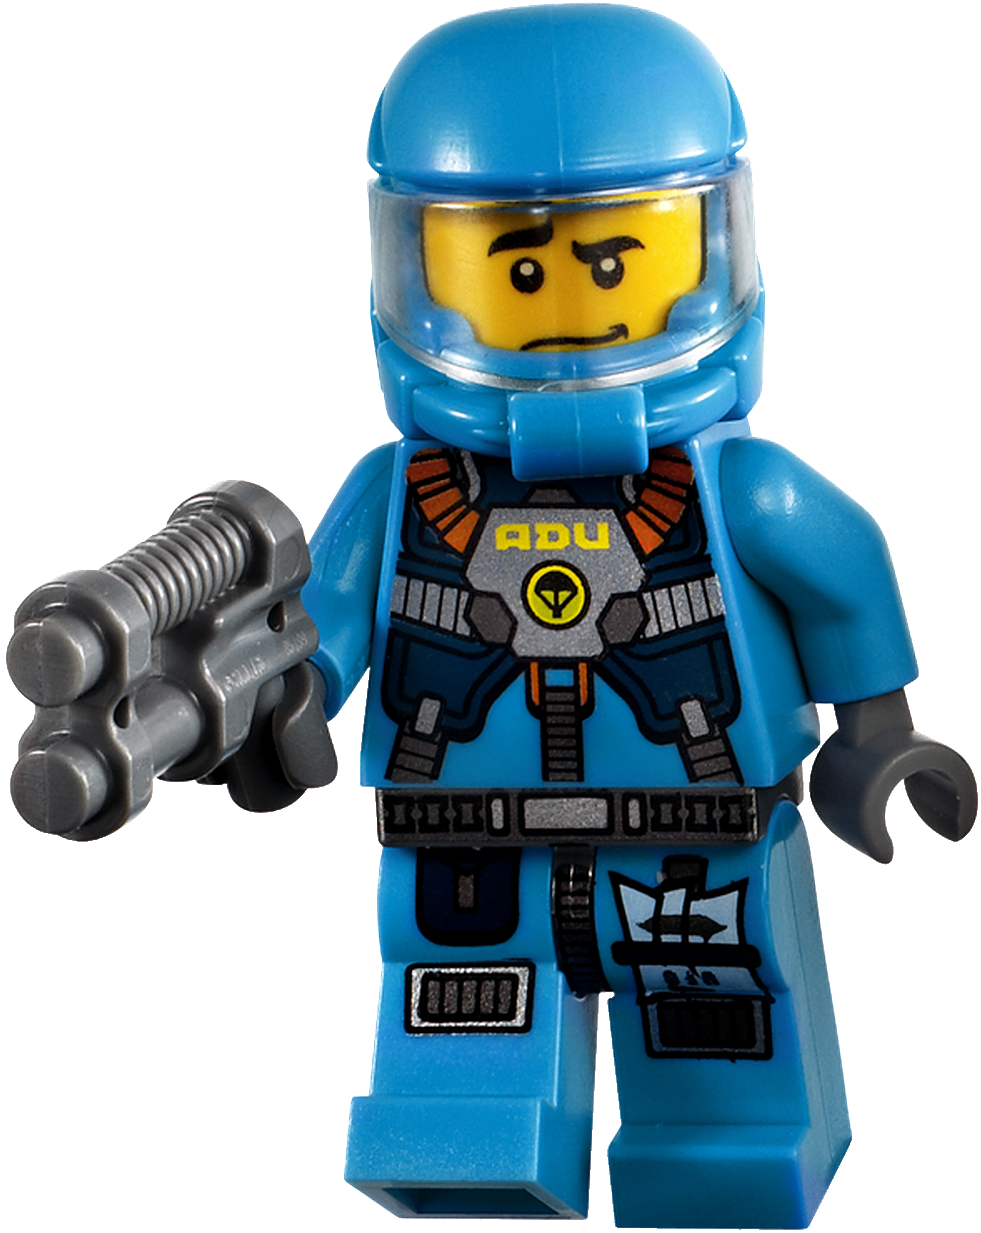 lego minifigure png - photo #18